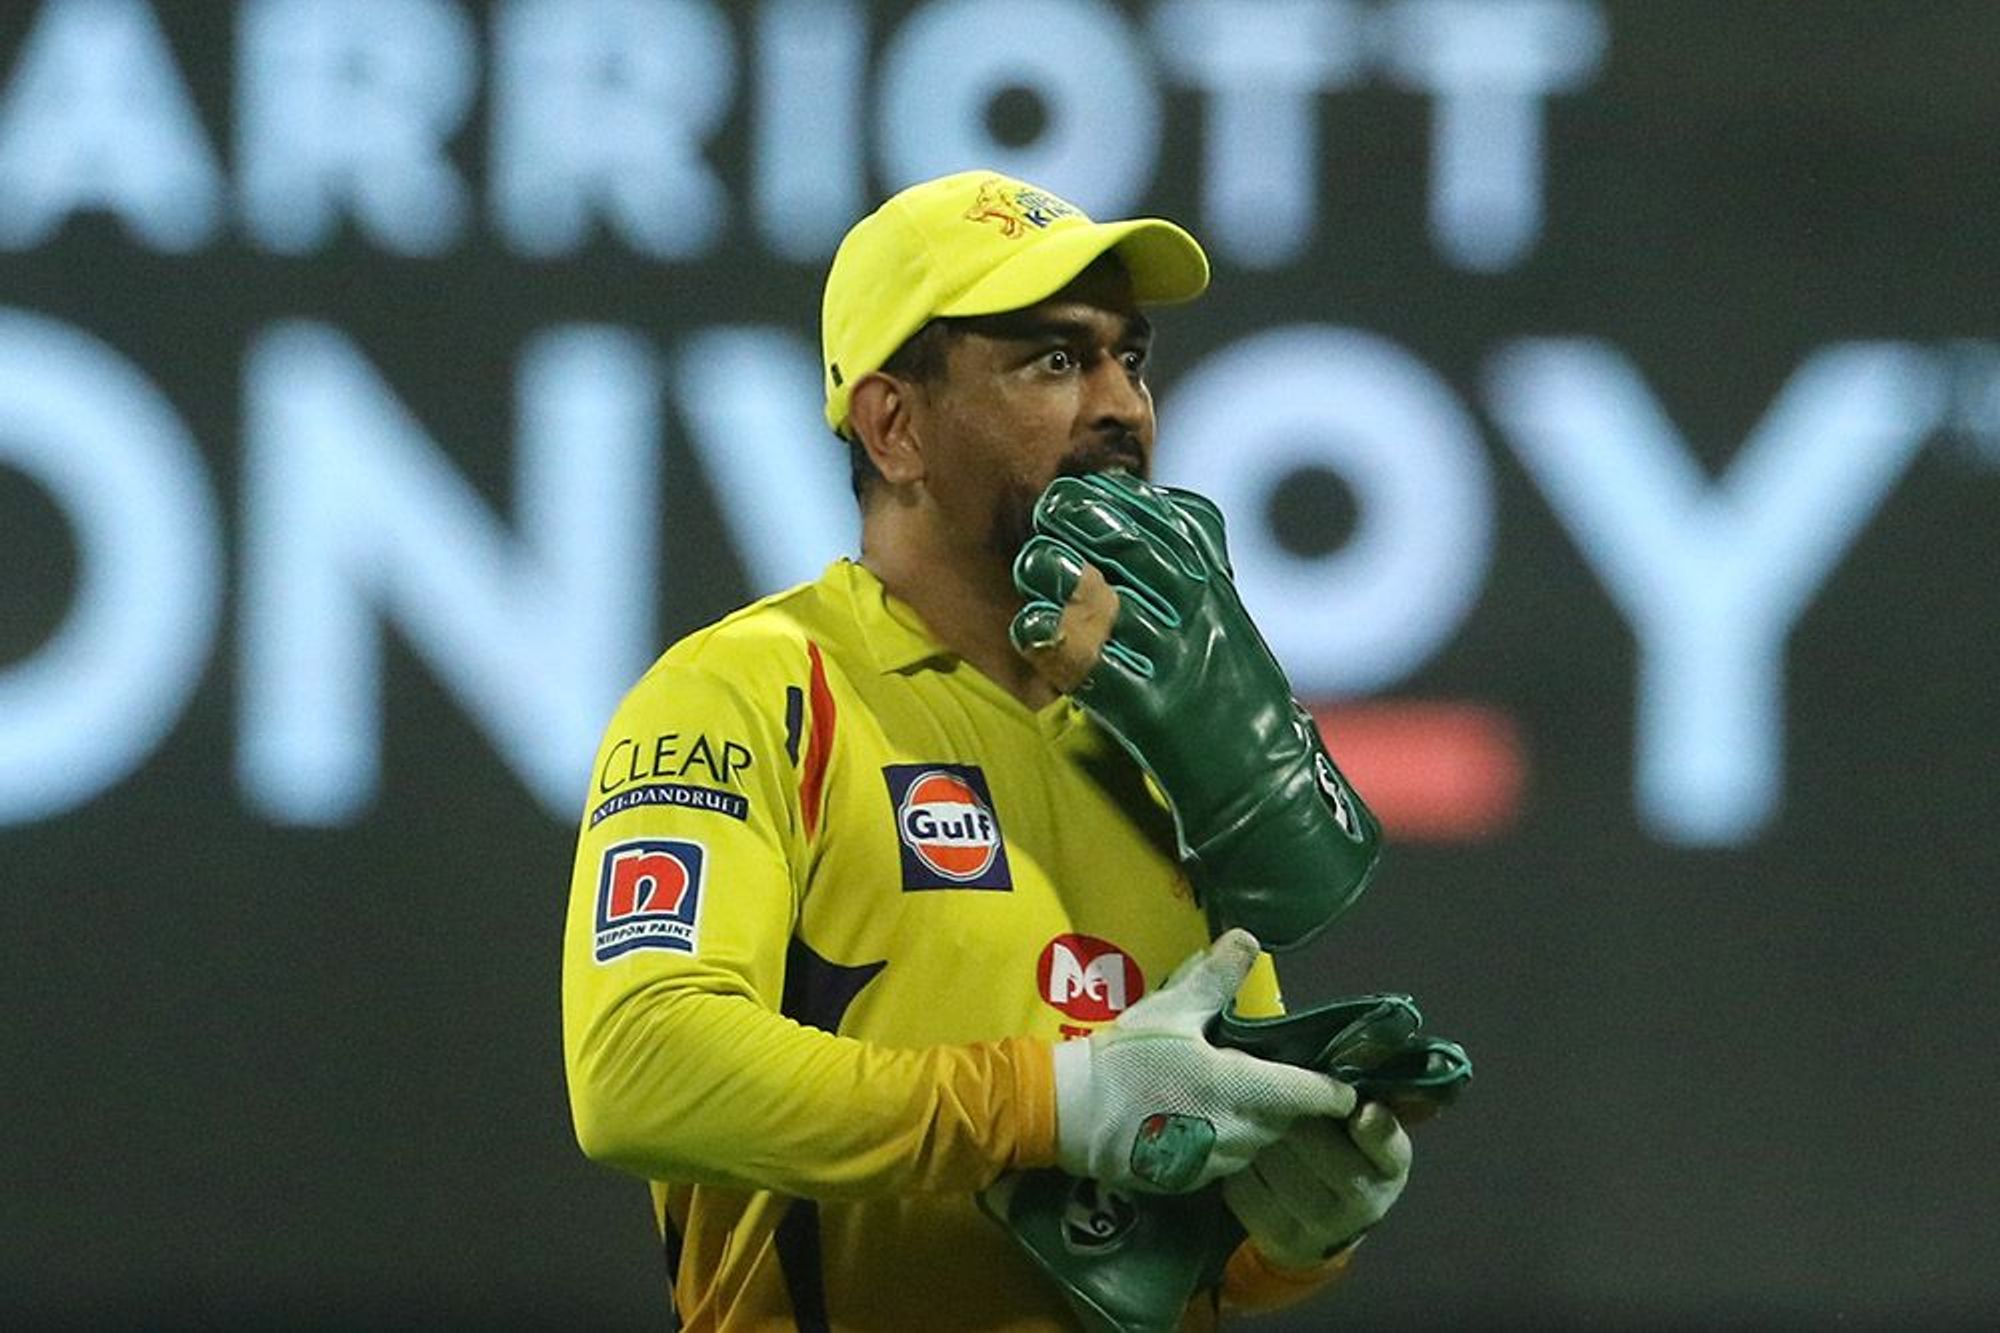 MS Dhoni's epic reply to the commentator asking 'Whether he has revenge on his mind'